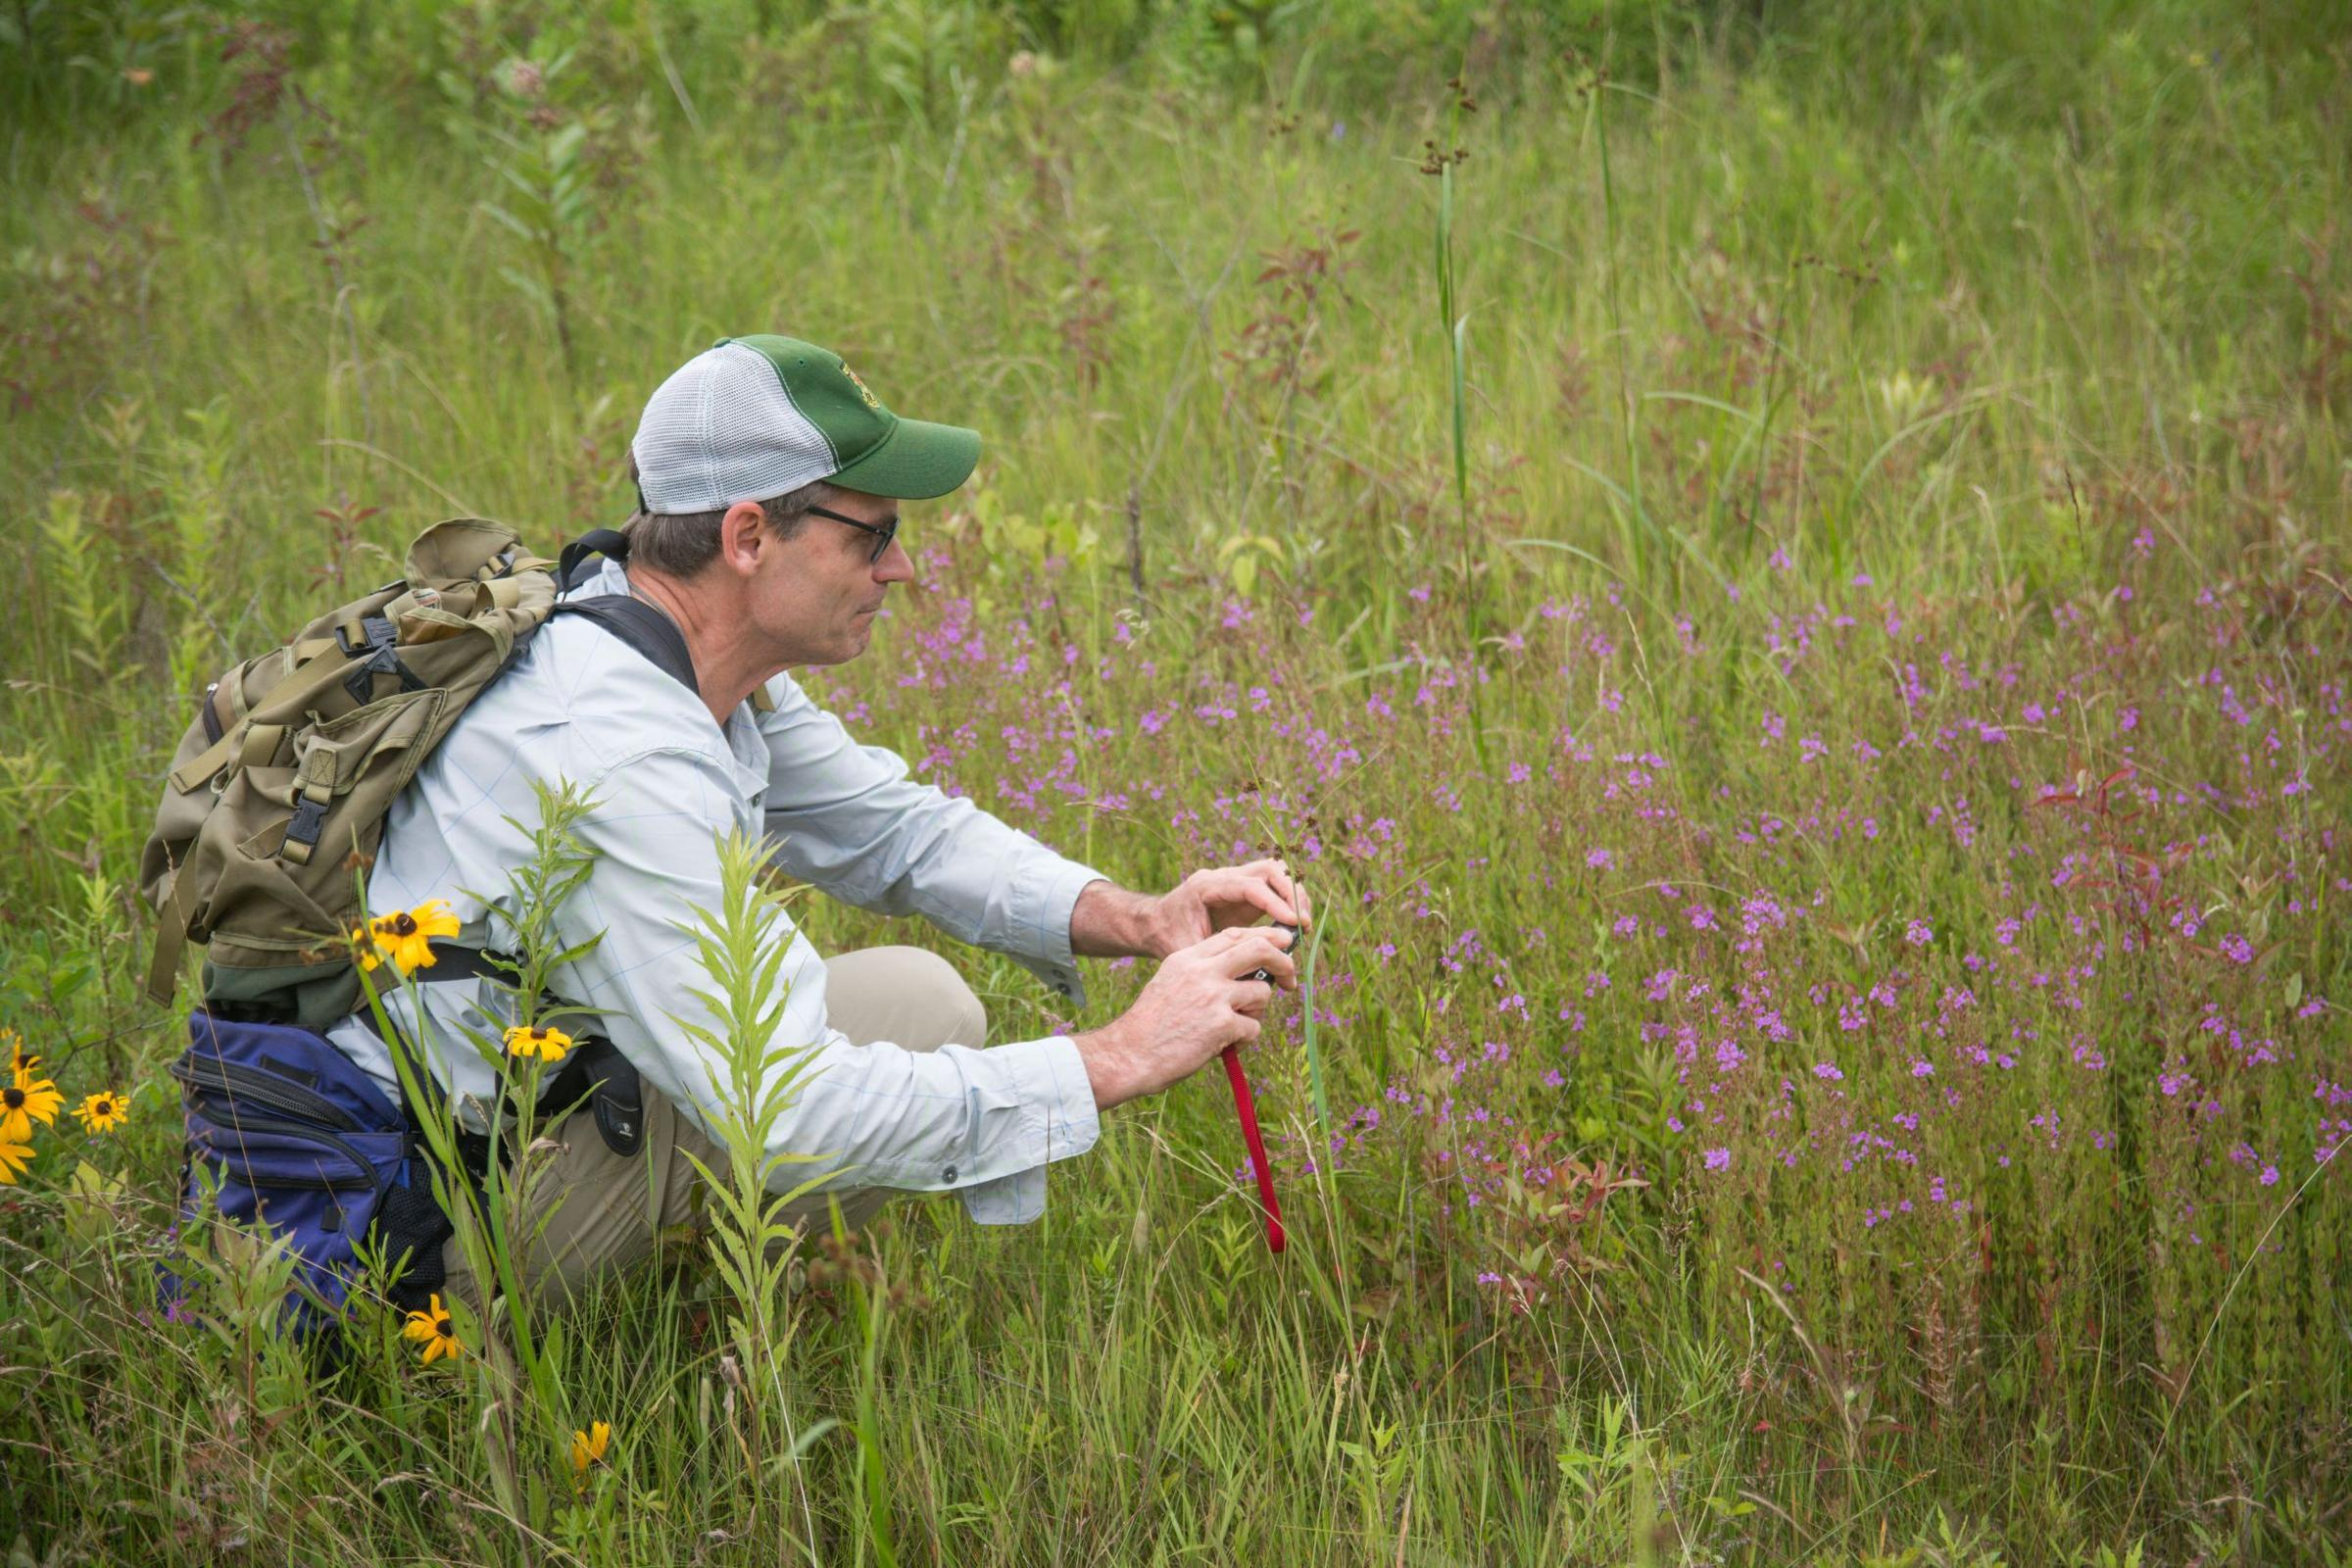 Rare flower thought extinct in vermont rediscovered for Vermont fish and wildlife jobs